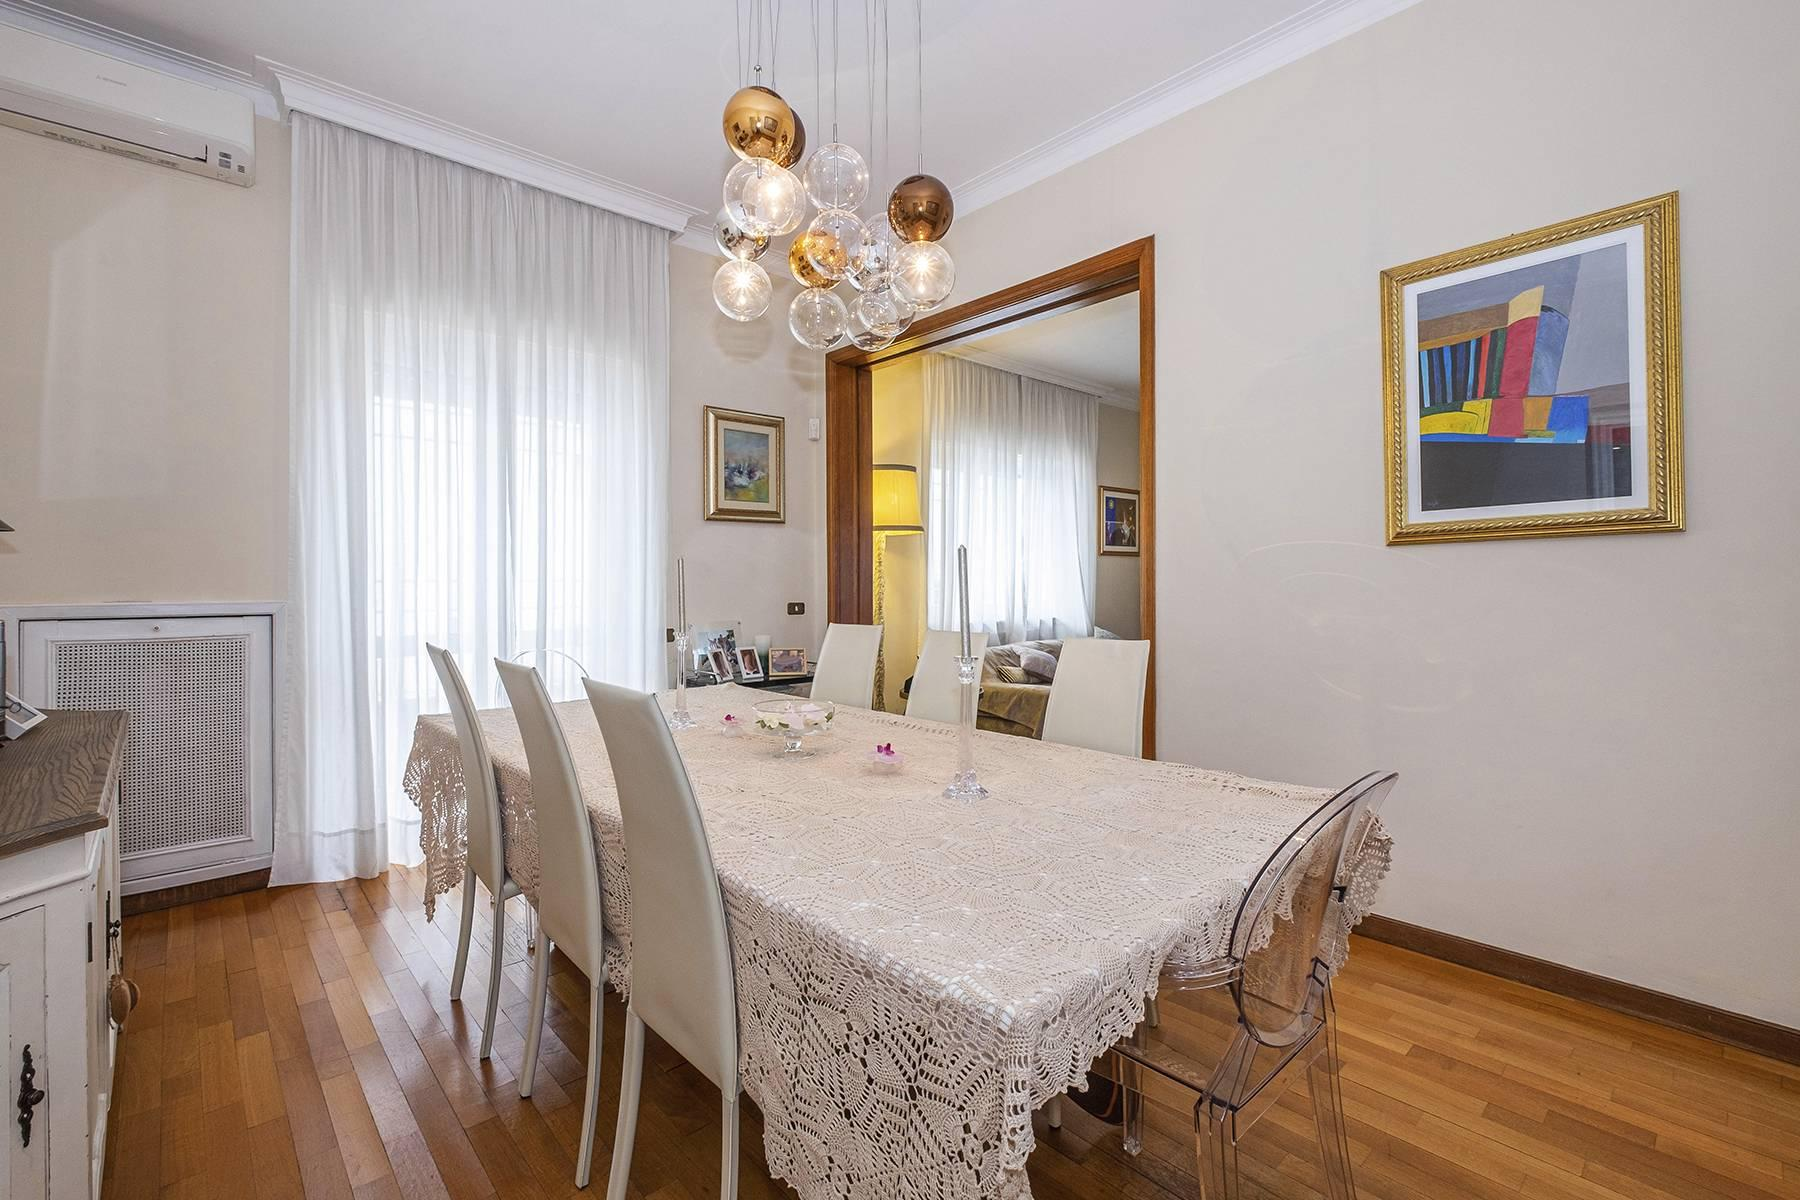 Modern penthouse with stunning 70 sqm terrace a stone's throw from Villa Borghese - 9